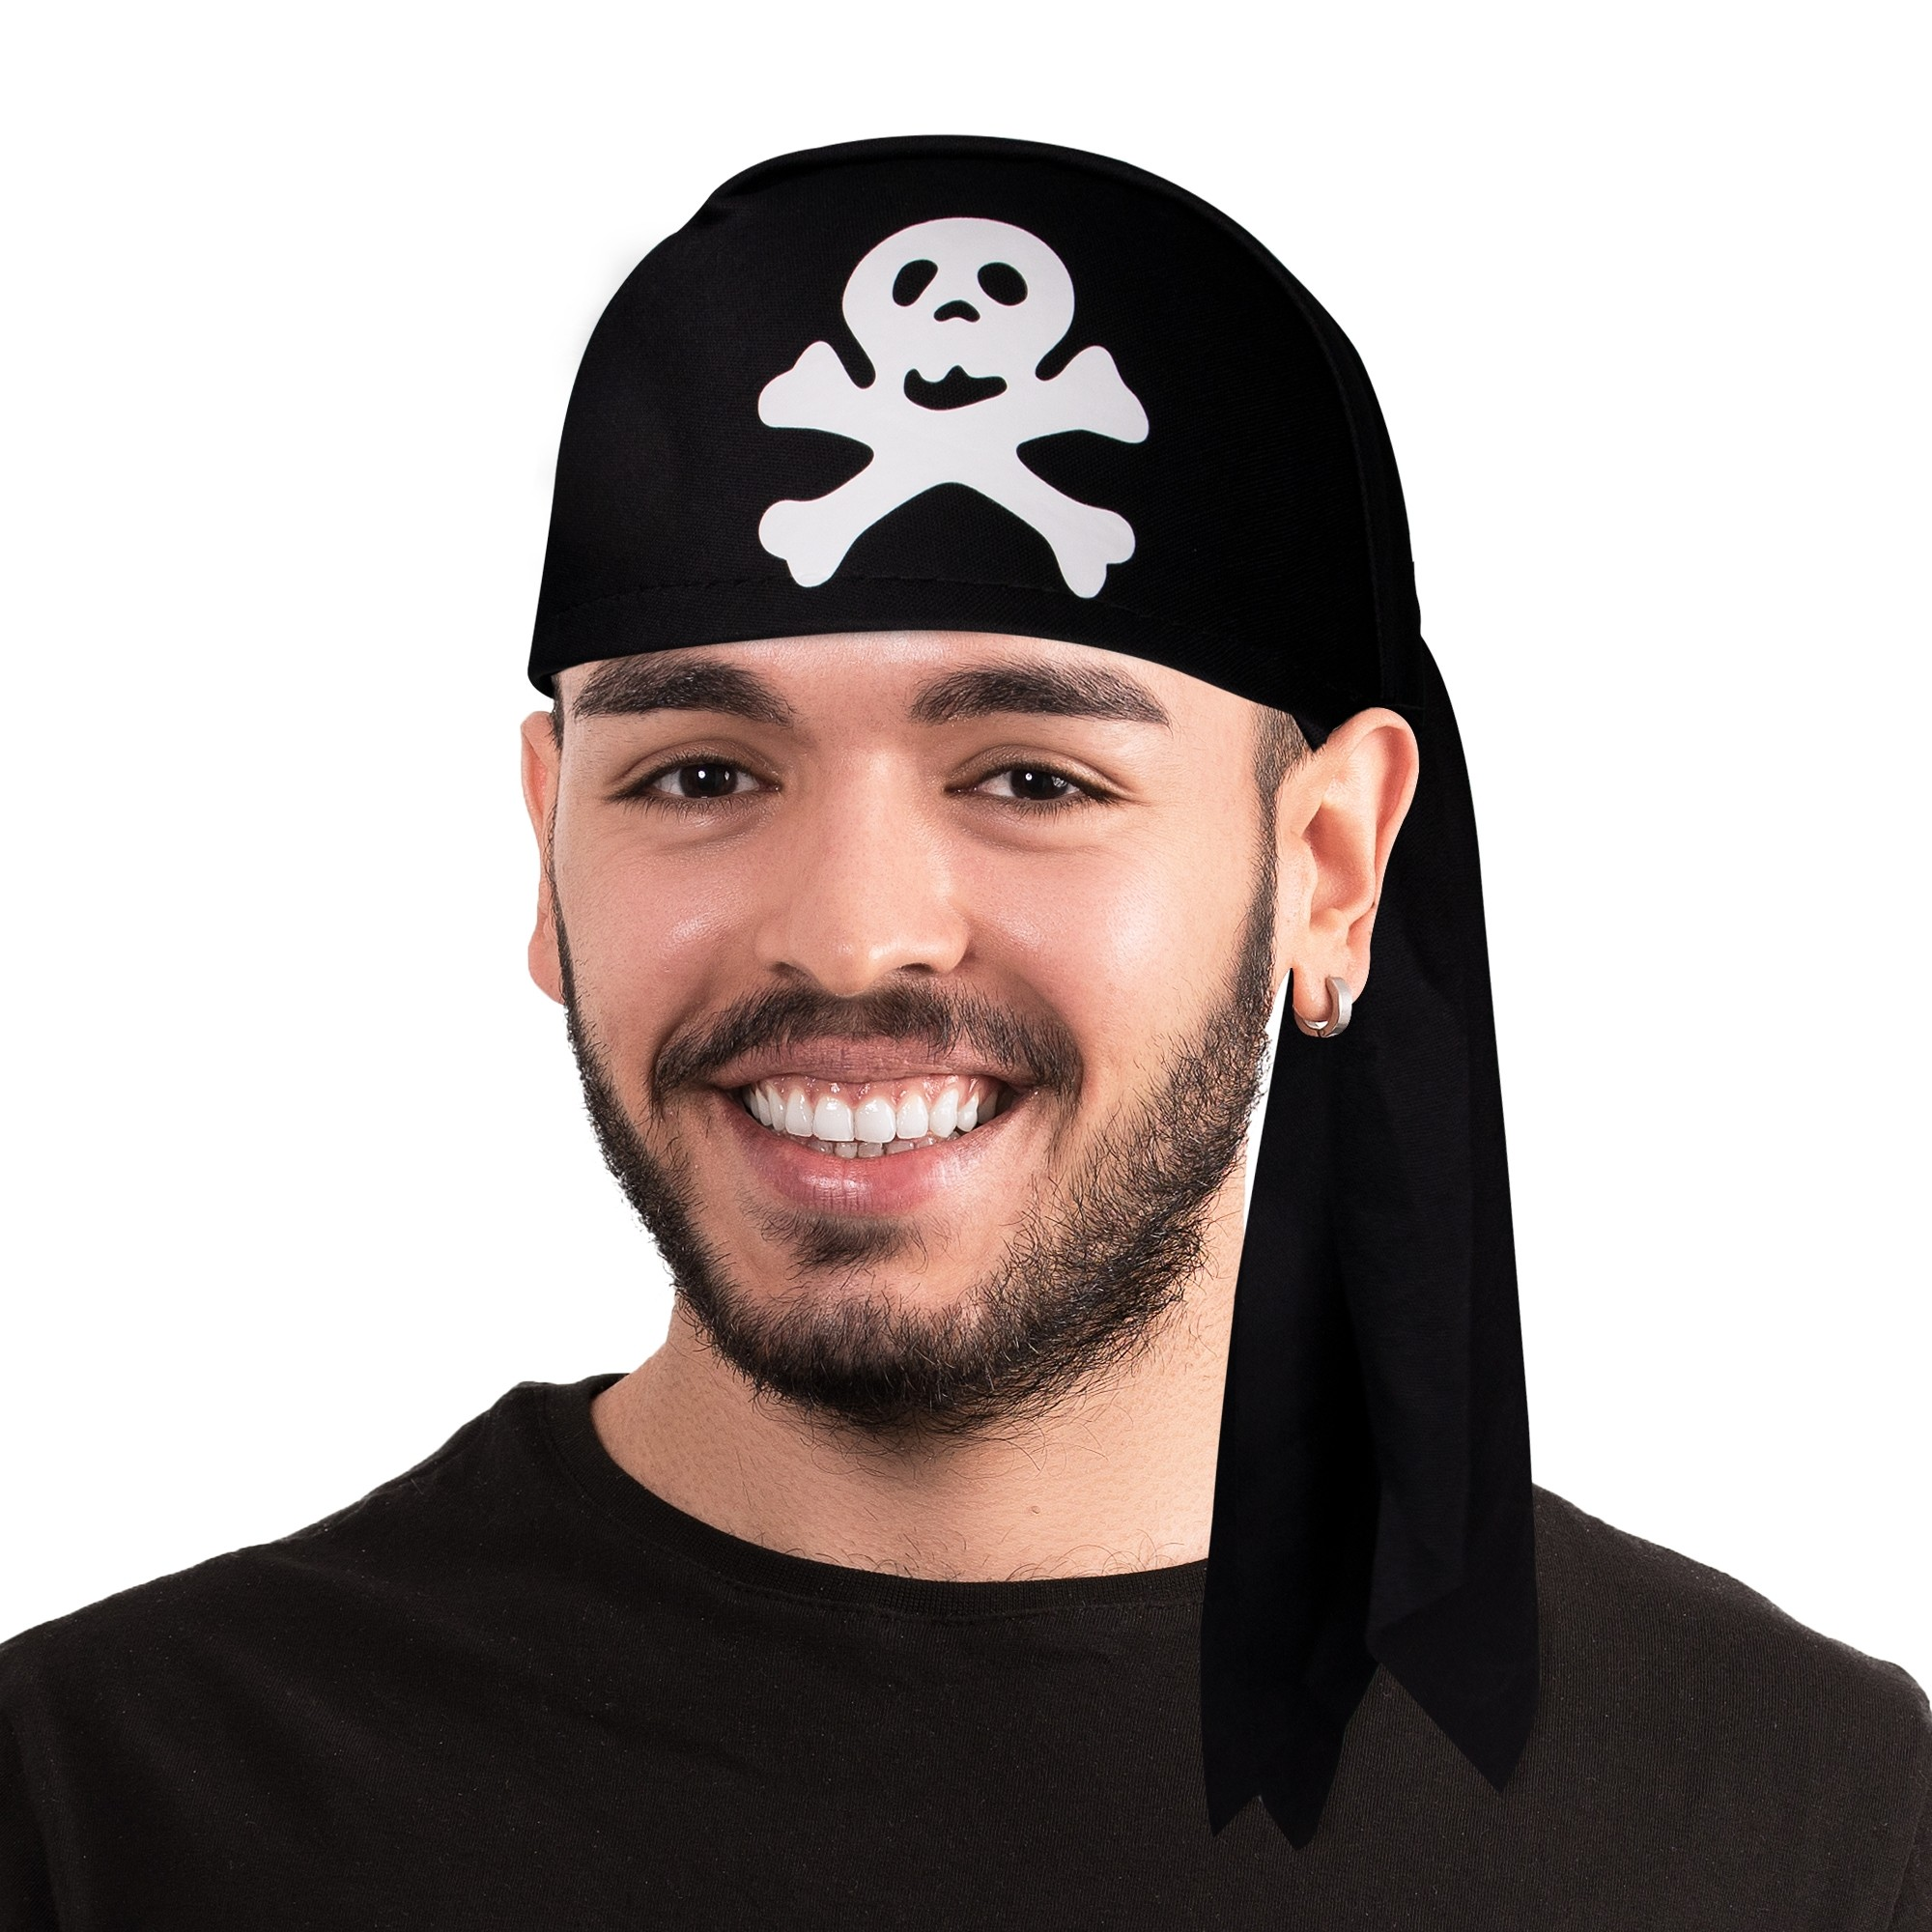 Pirate Skull Cap